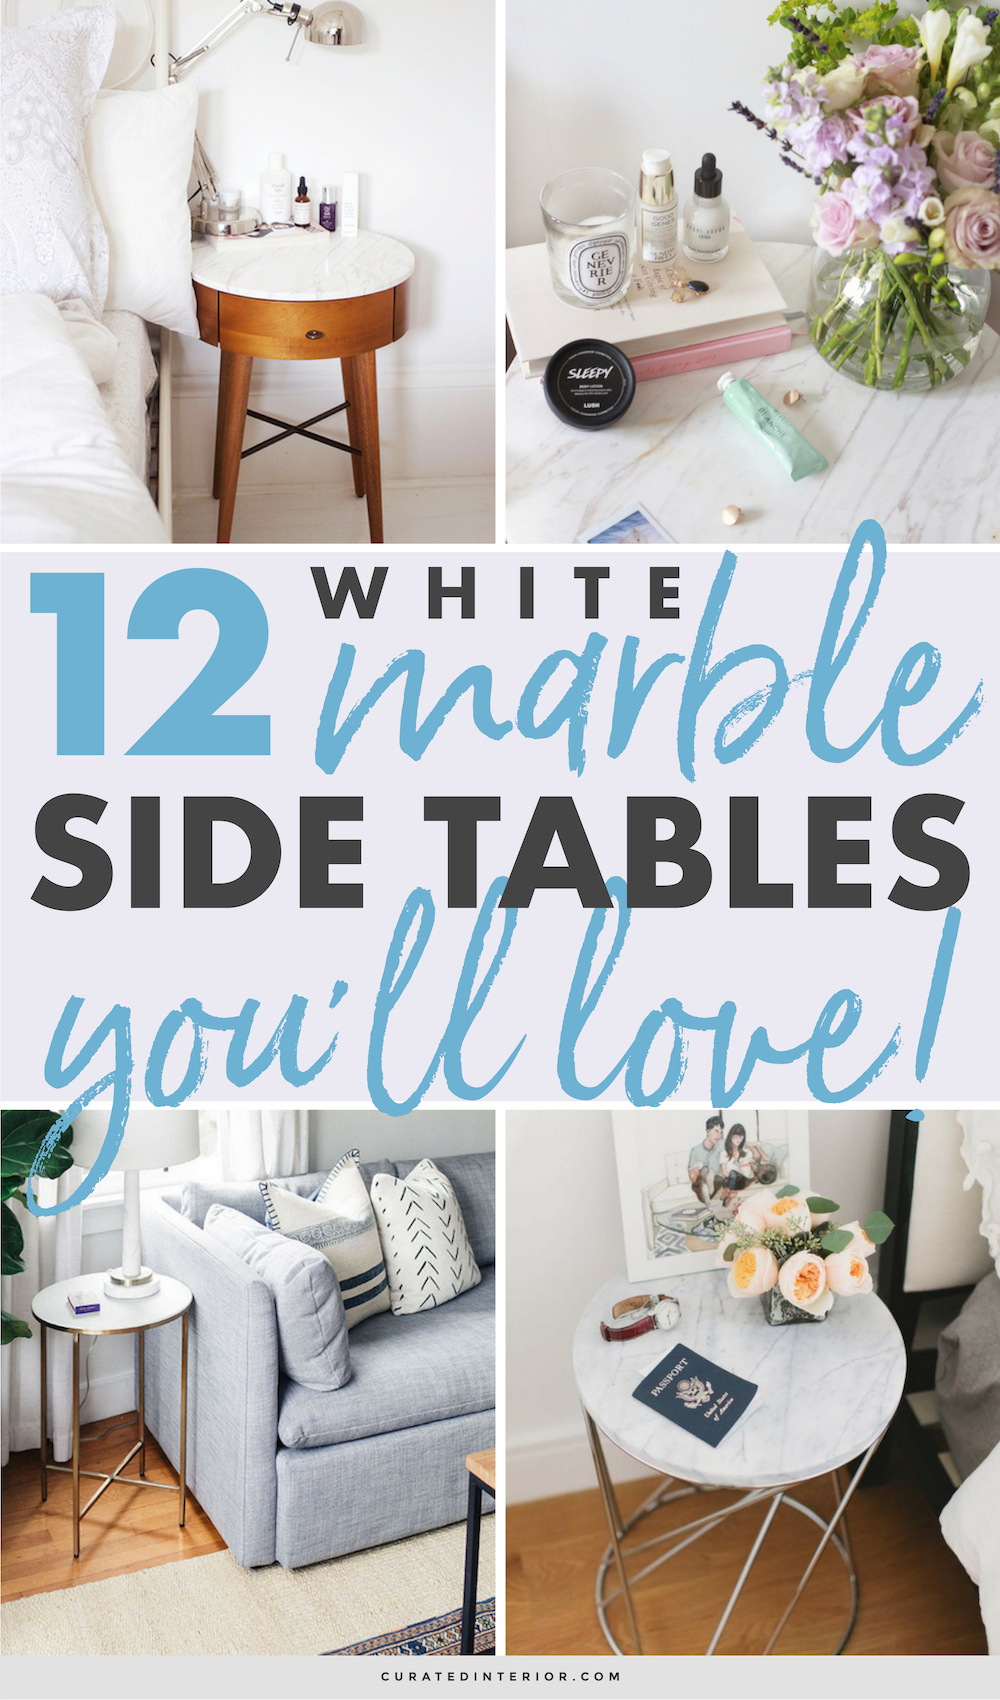 White Marble Side Tables You'll Love! #marble #whitemarble #sidetables